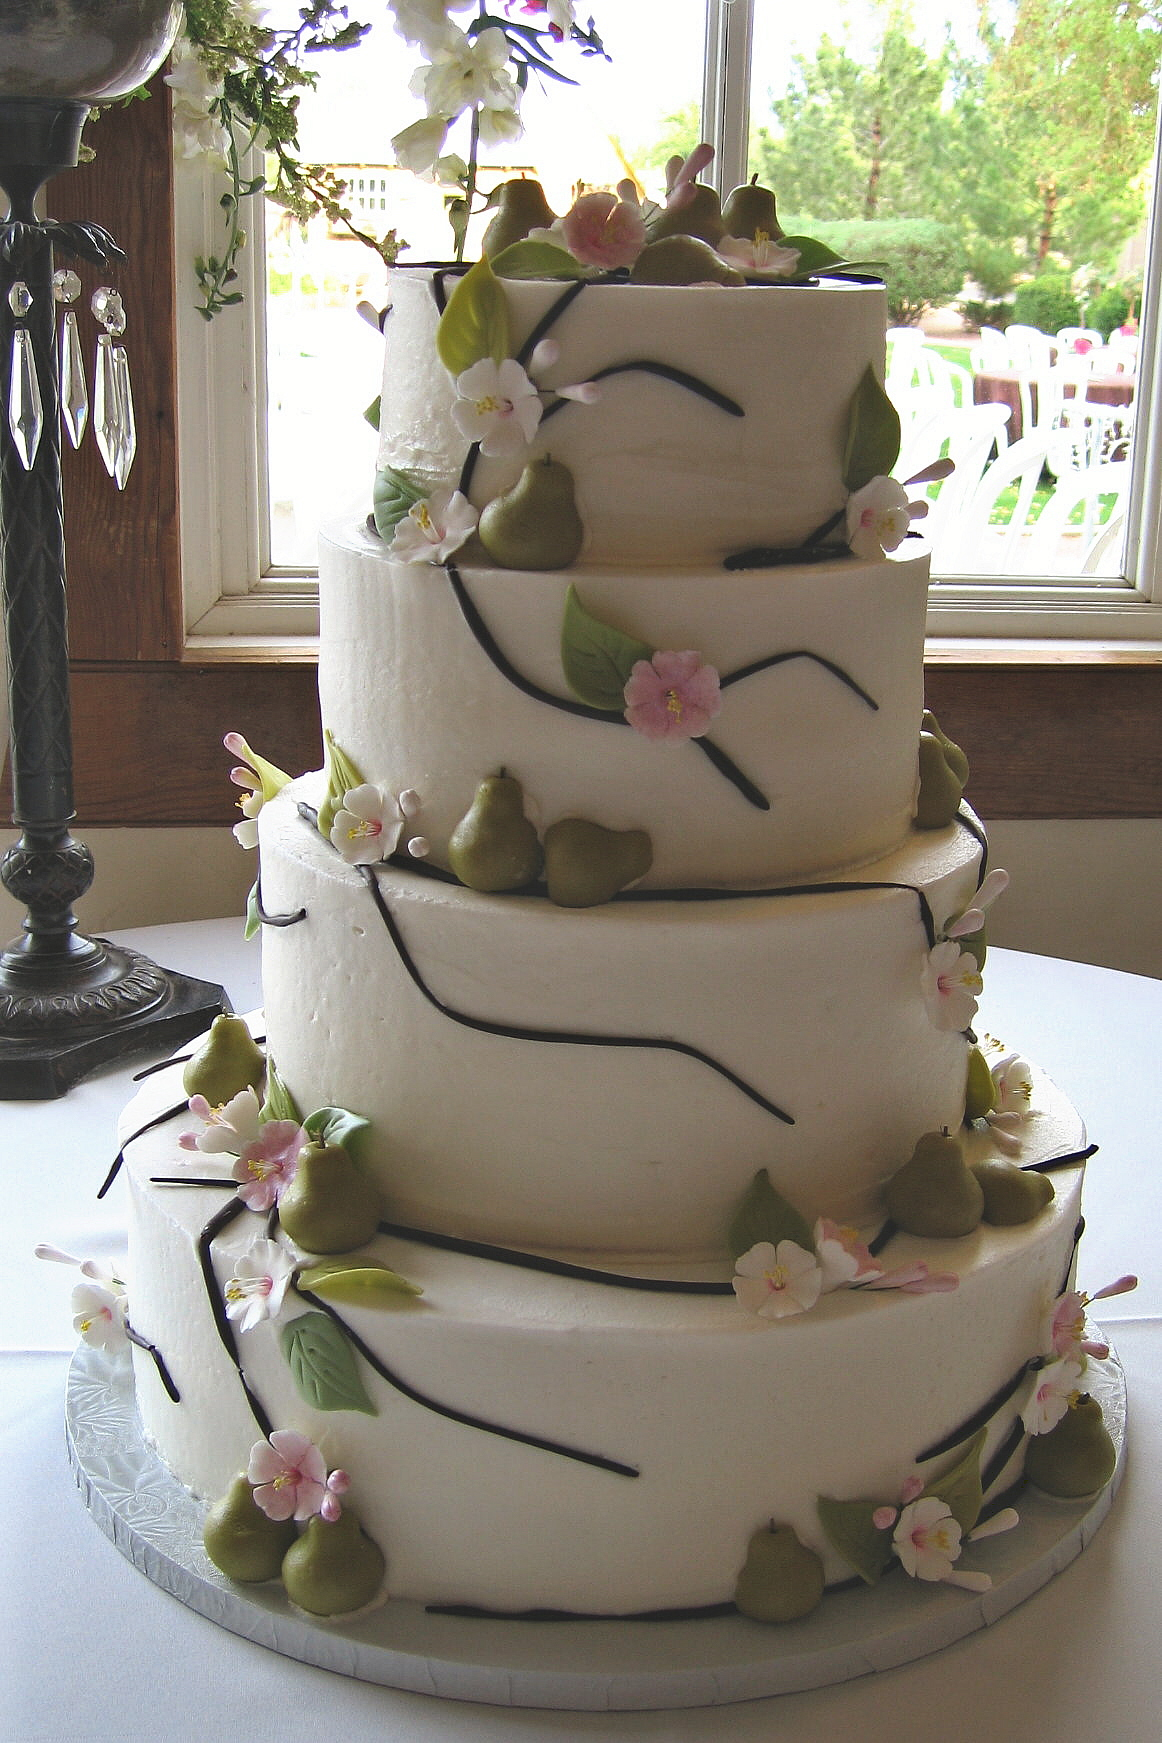 Cakes, pink, green, brown, cake, Round, Wedding, Cherry, Blossoms, Stacked, Graceful cake creations, Pears